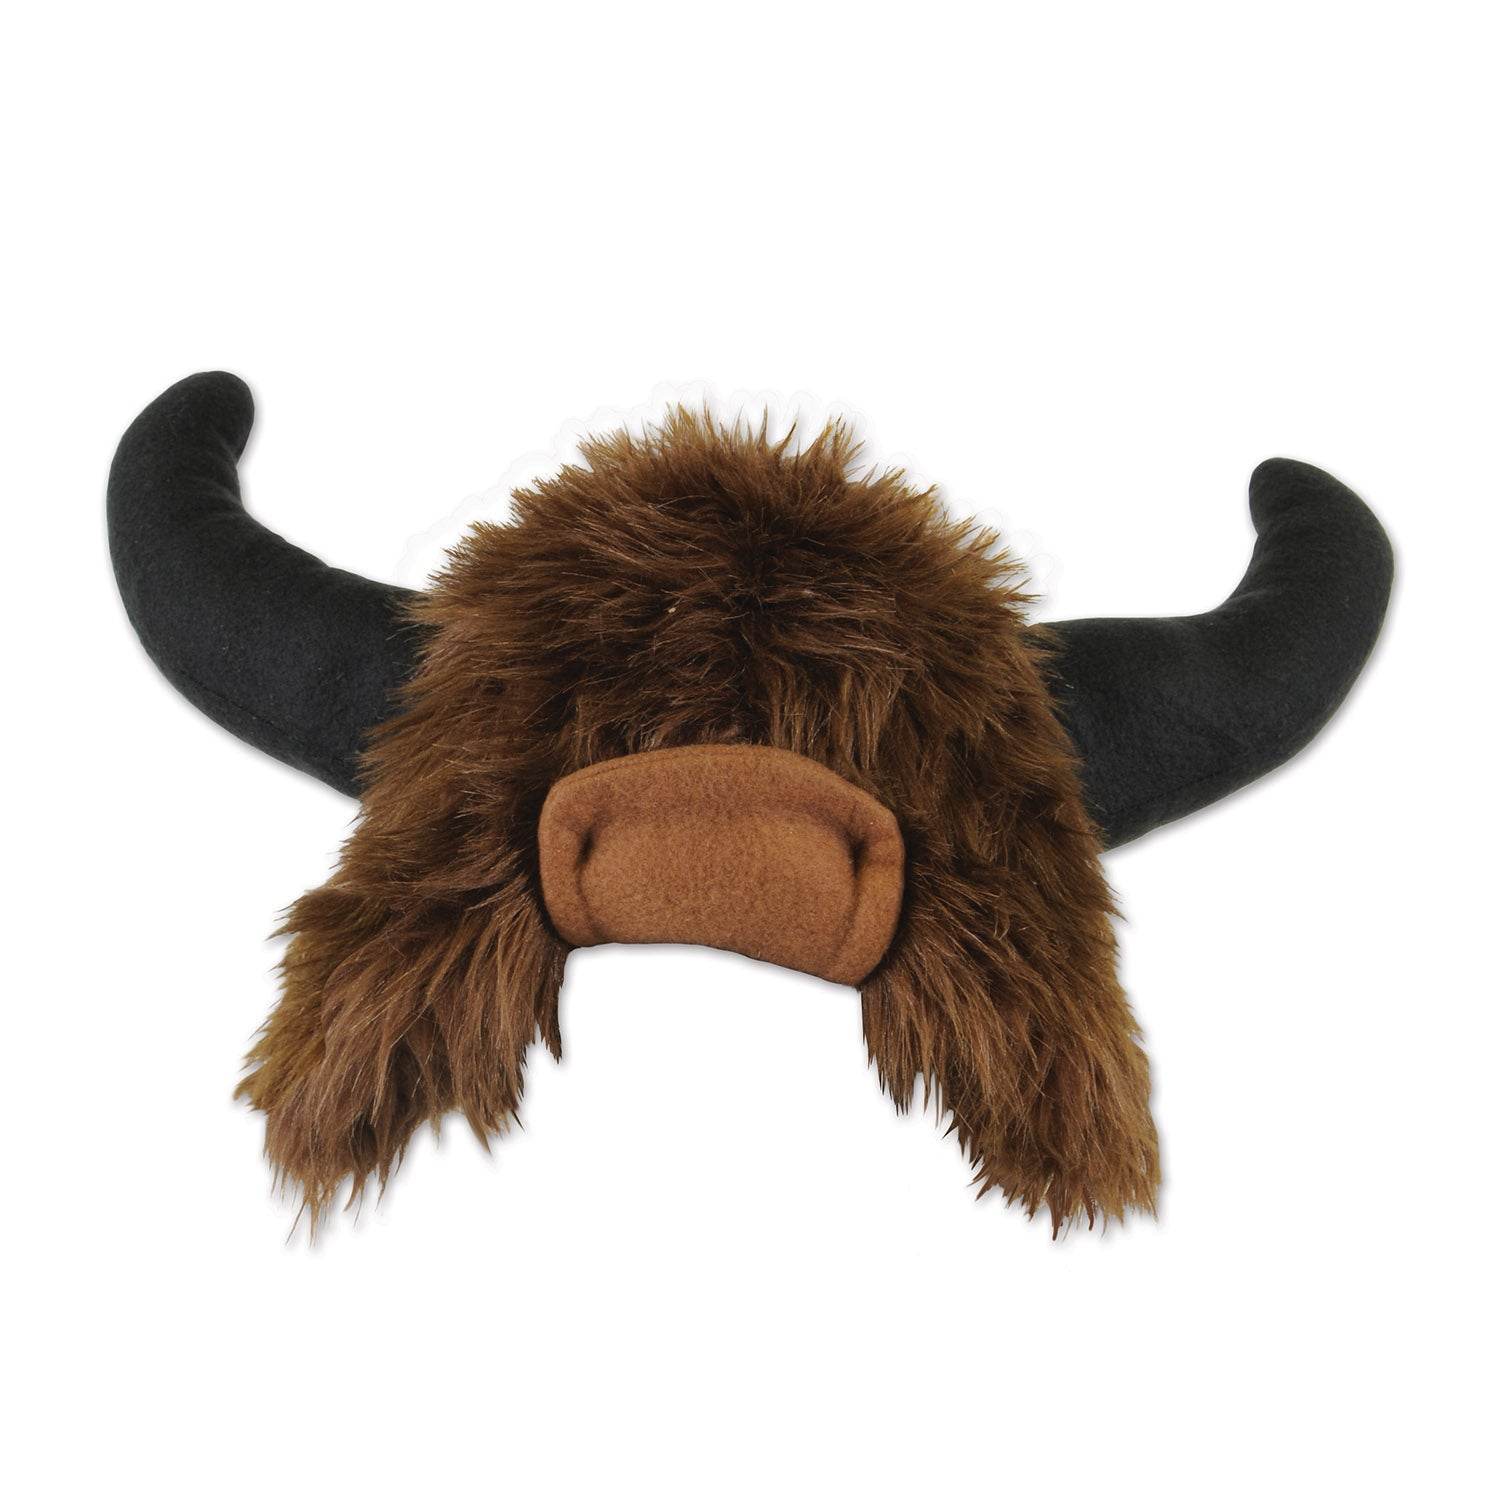 Plush Buffalo Hat by Beistle - Western Theme Decorations